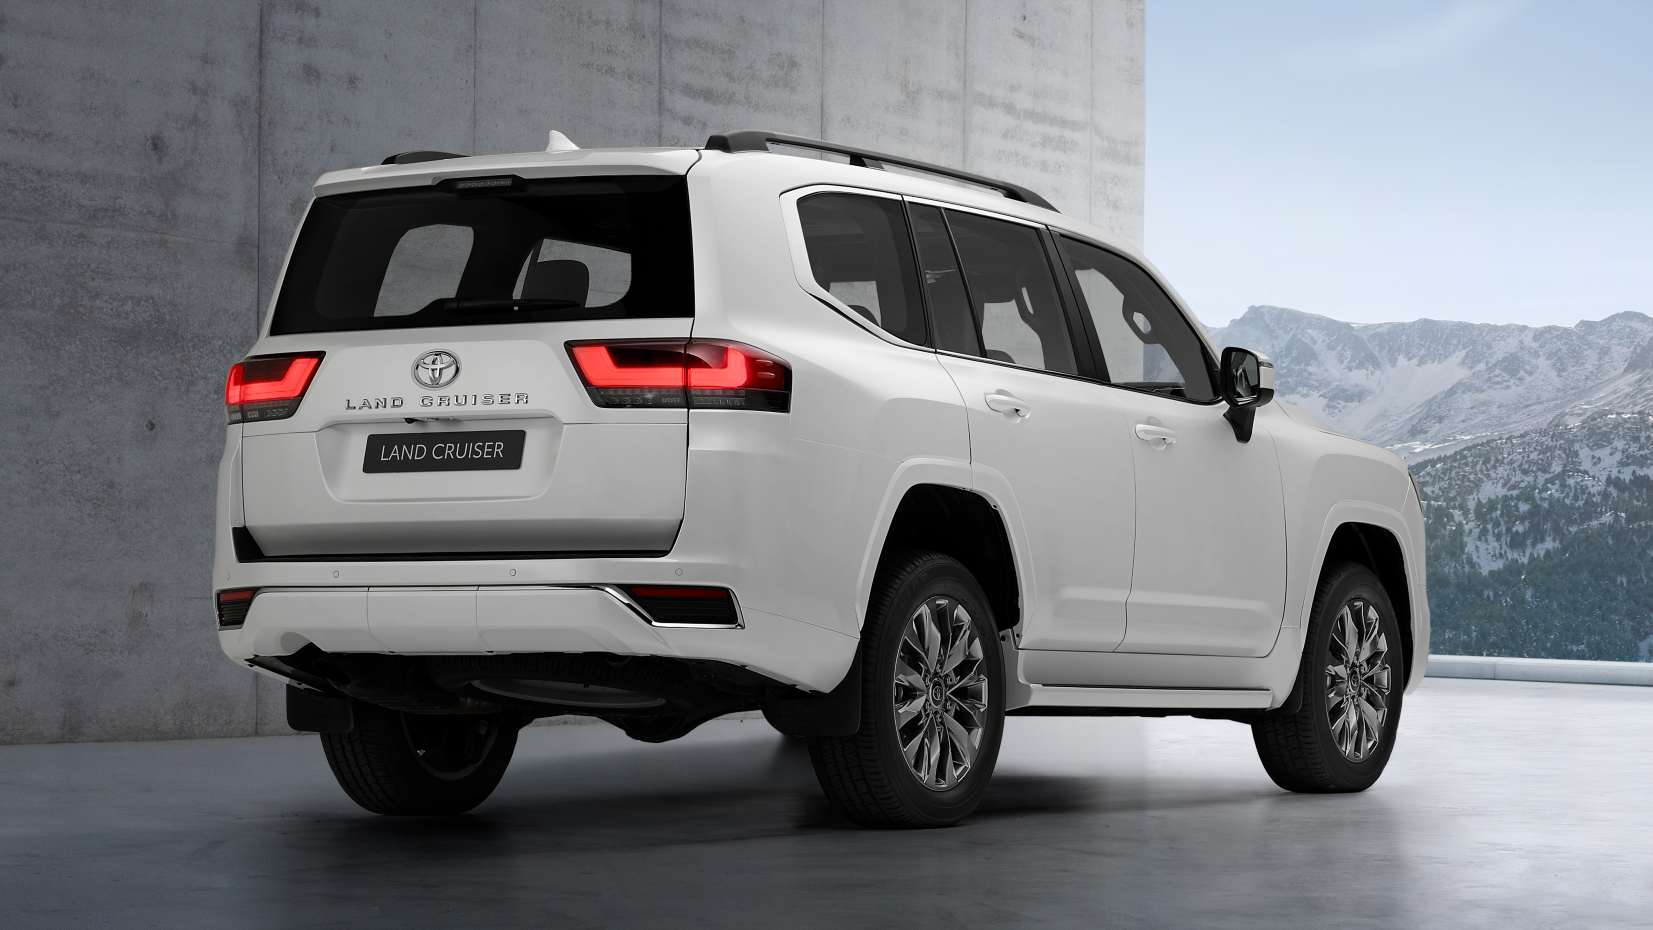 Toyota has given the Land Cruiser LC 300 twin-turbo V6 petrol and diesel engine options. Image: Toyota